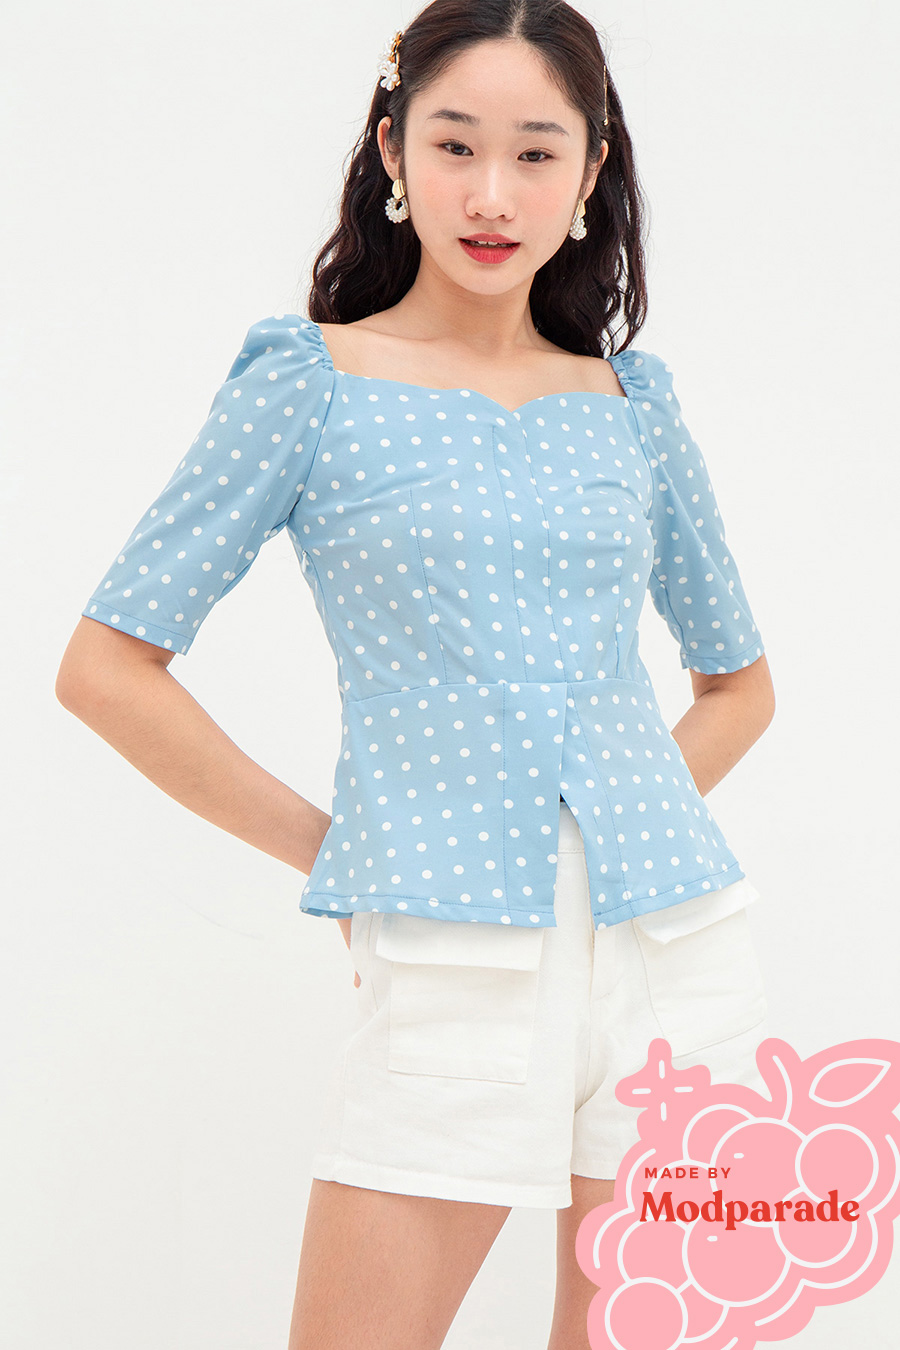 *SALE* HEDDA TOP - DOTTIE [BY MODPARADE]